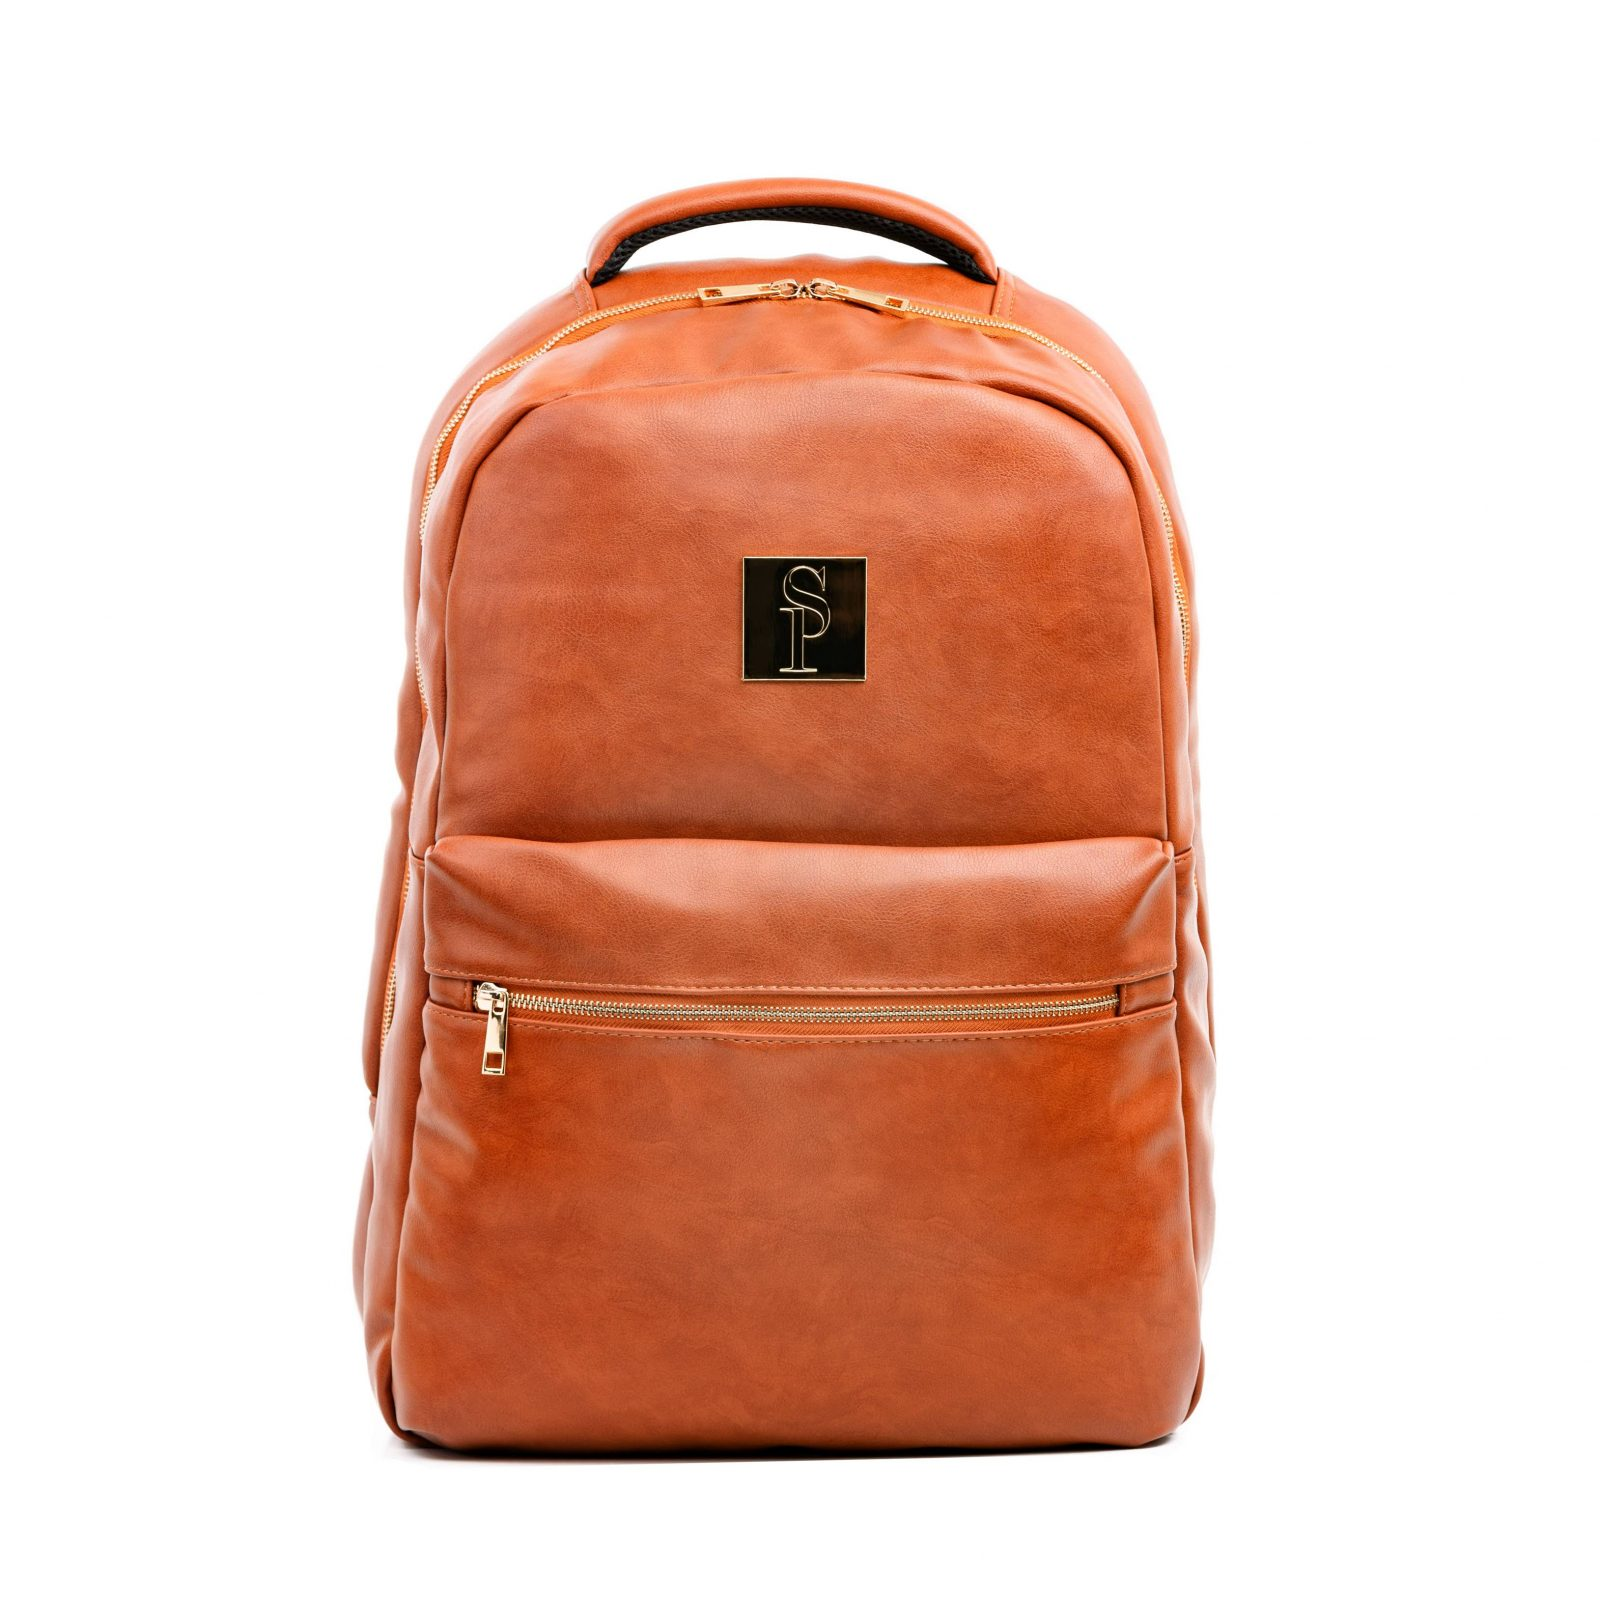 072623179 Daily Commuter Brown Leather Bag - Sole Premise